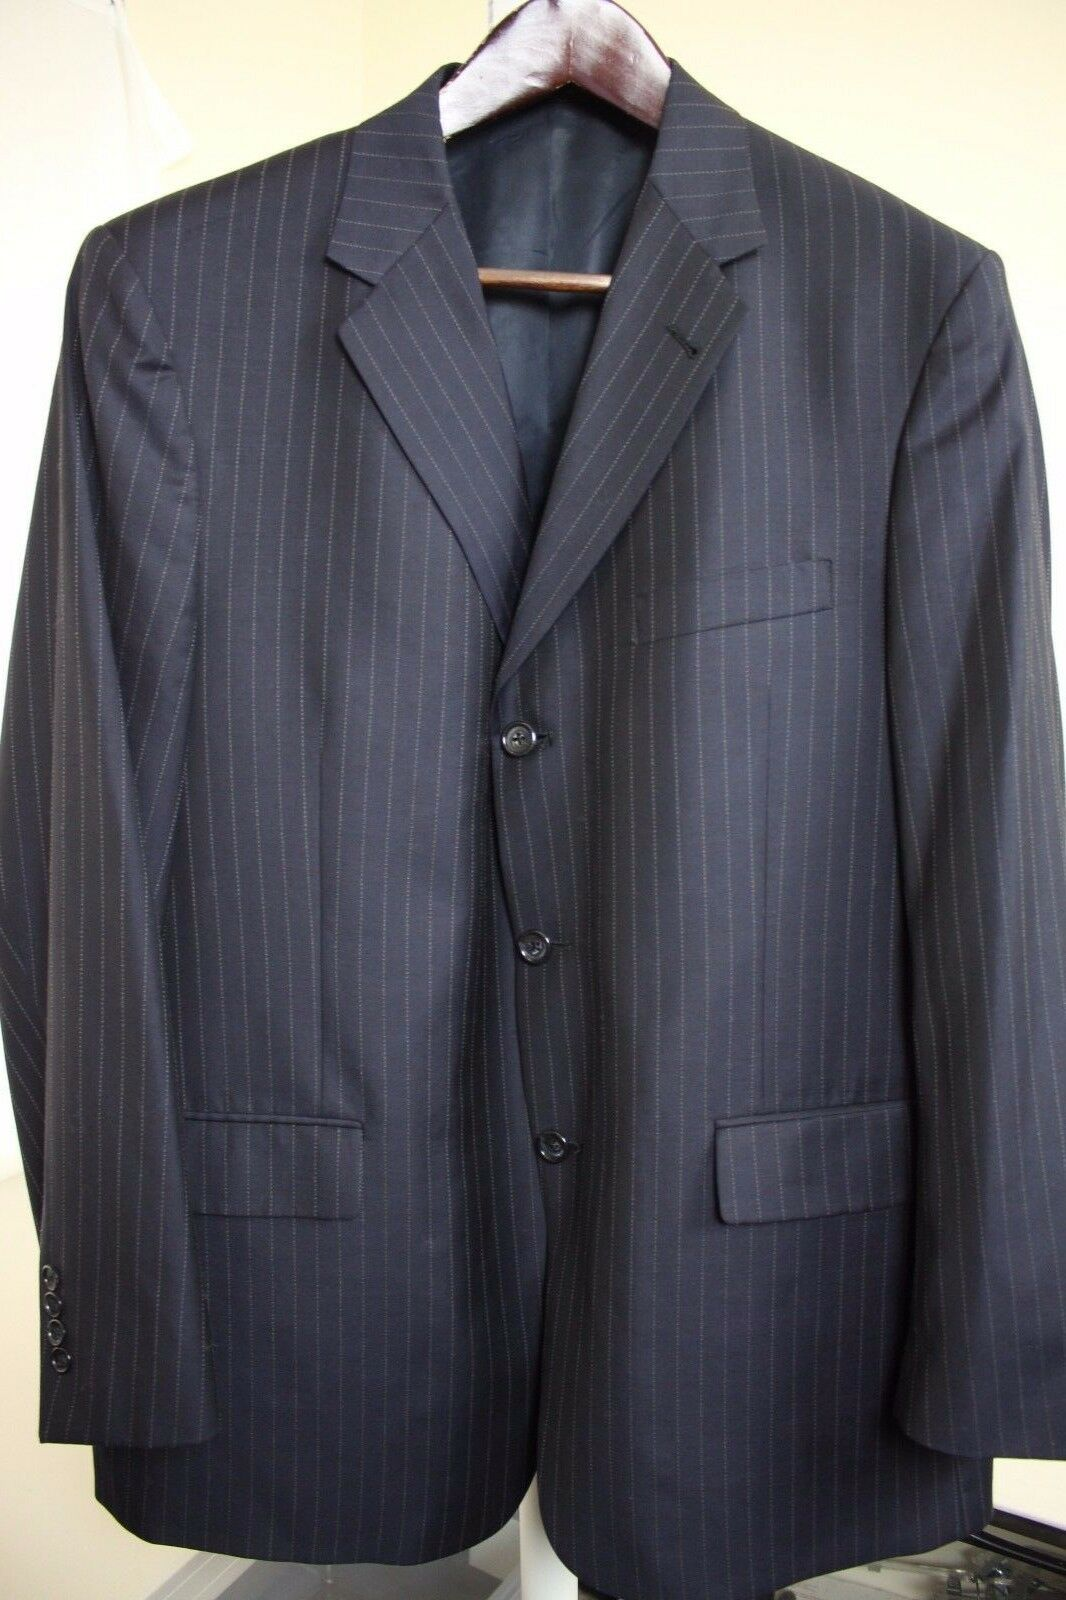 Kenneth Cole Wool & Silk Blend Navy Striped 2 Button Lined Blazer Size - 46R